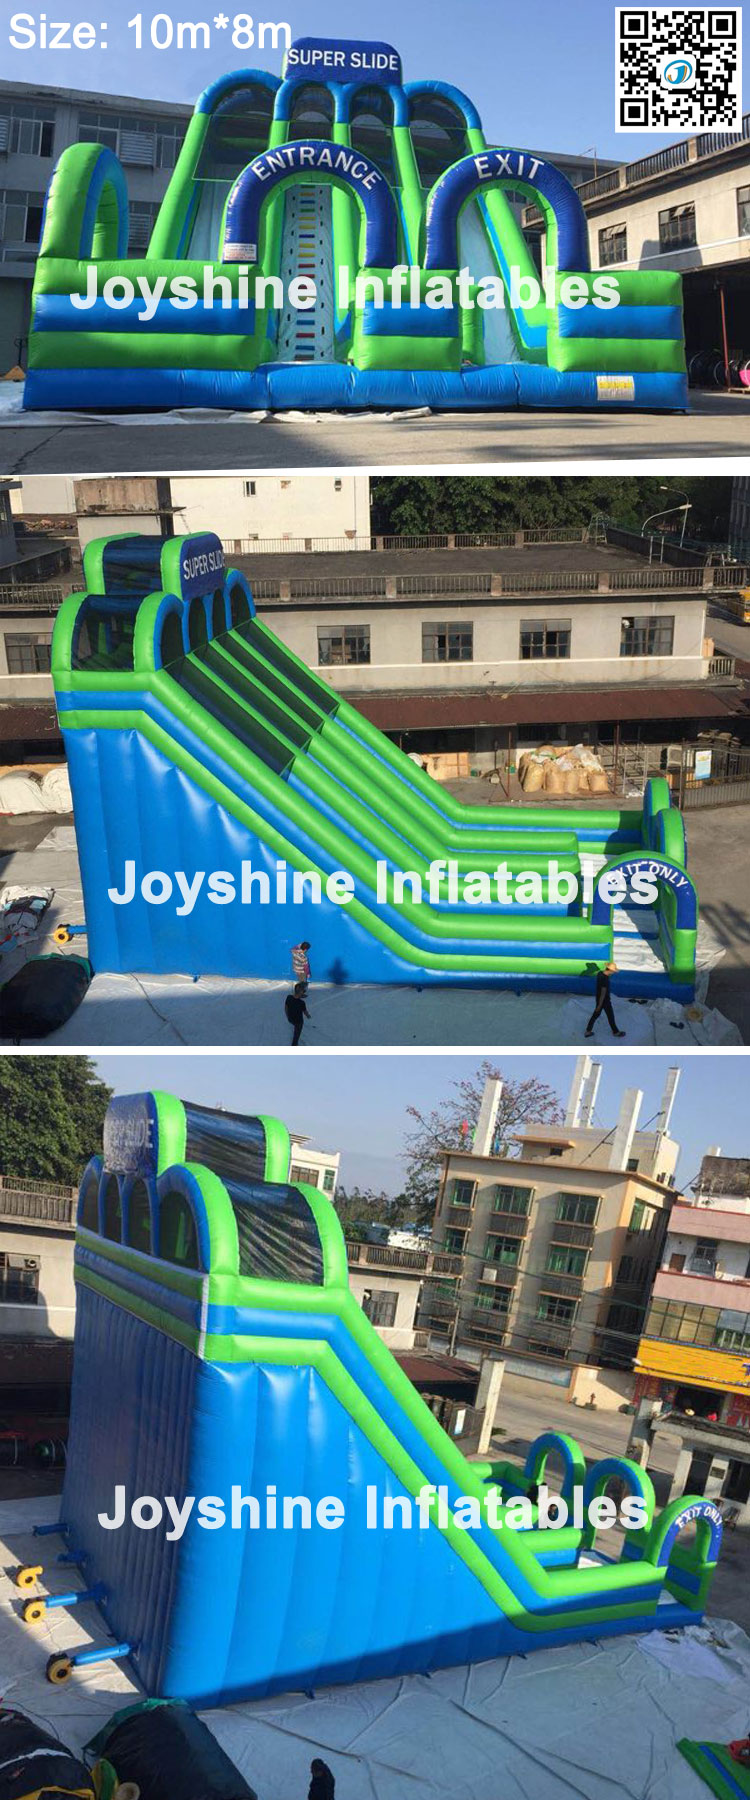 4 Lanes Giant Adults Kids Inflatable Sliding Bouncer Stair Water Slide Castle Inflatable Super Slide PVC